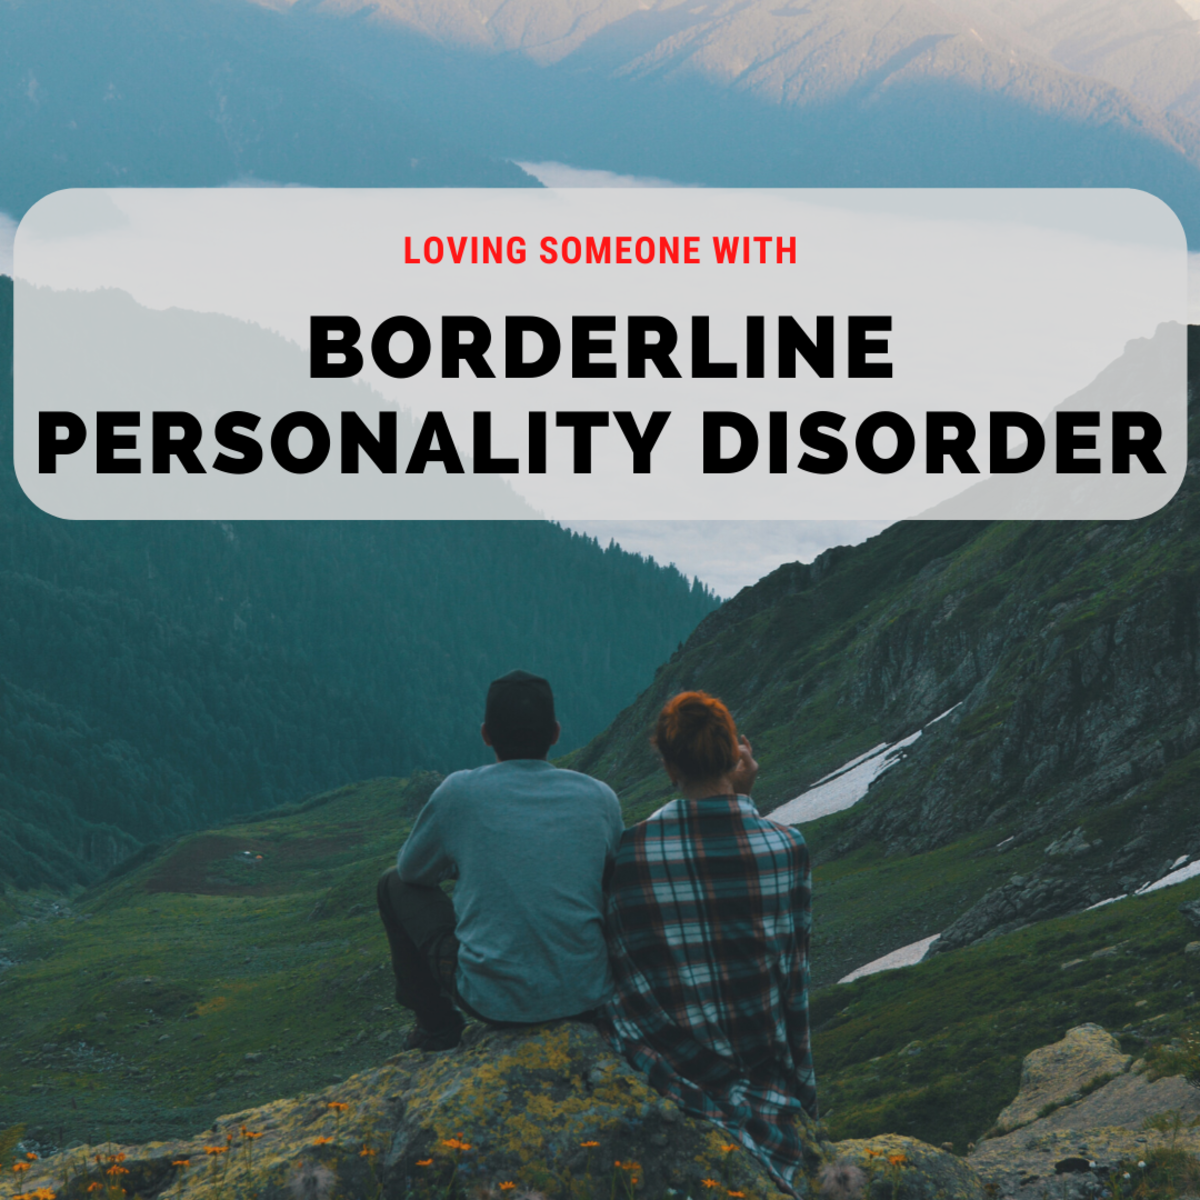 Those that struggle with borderline personality disorder often feel like they don't know where they fit in.